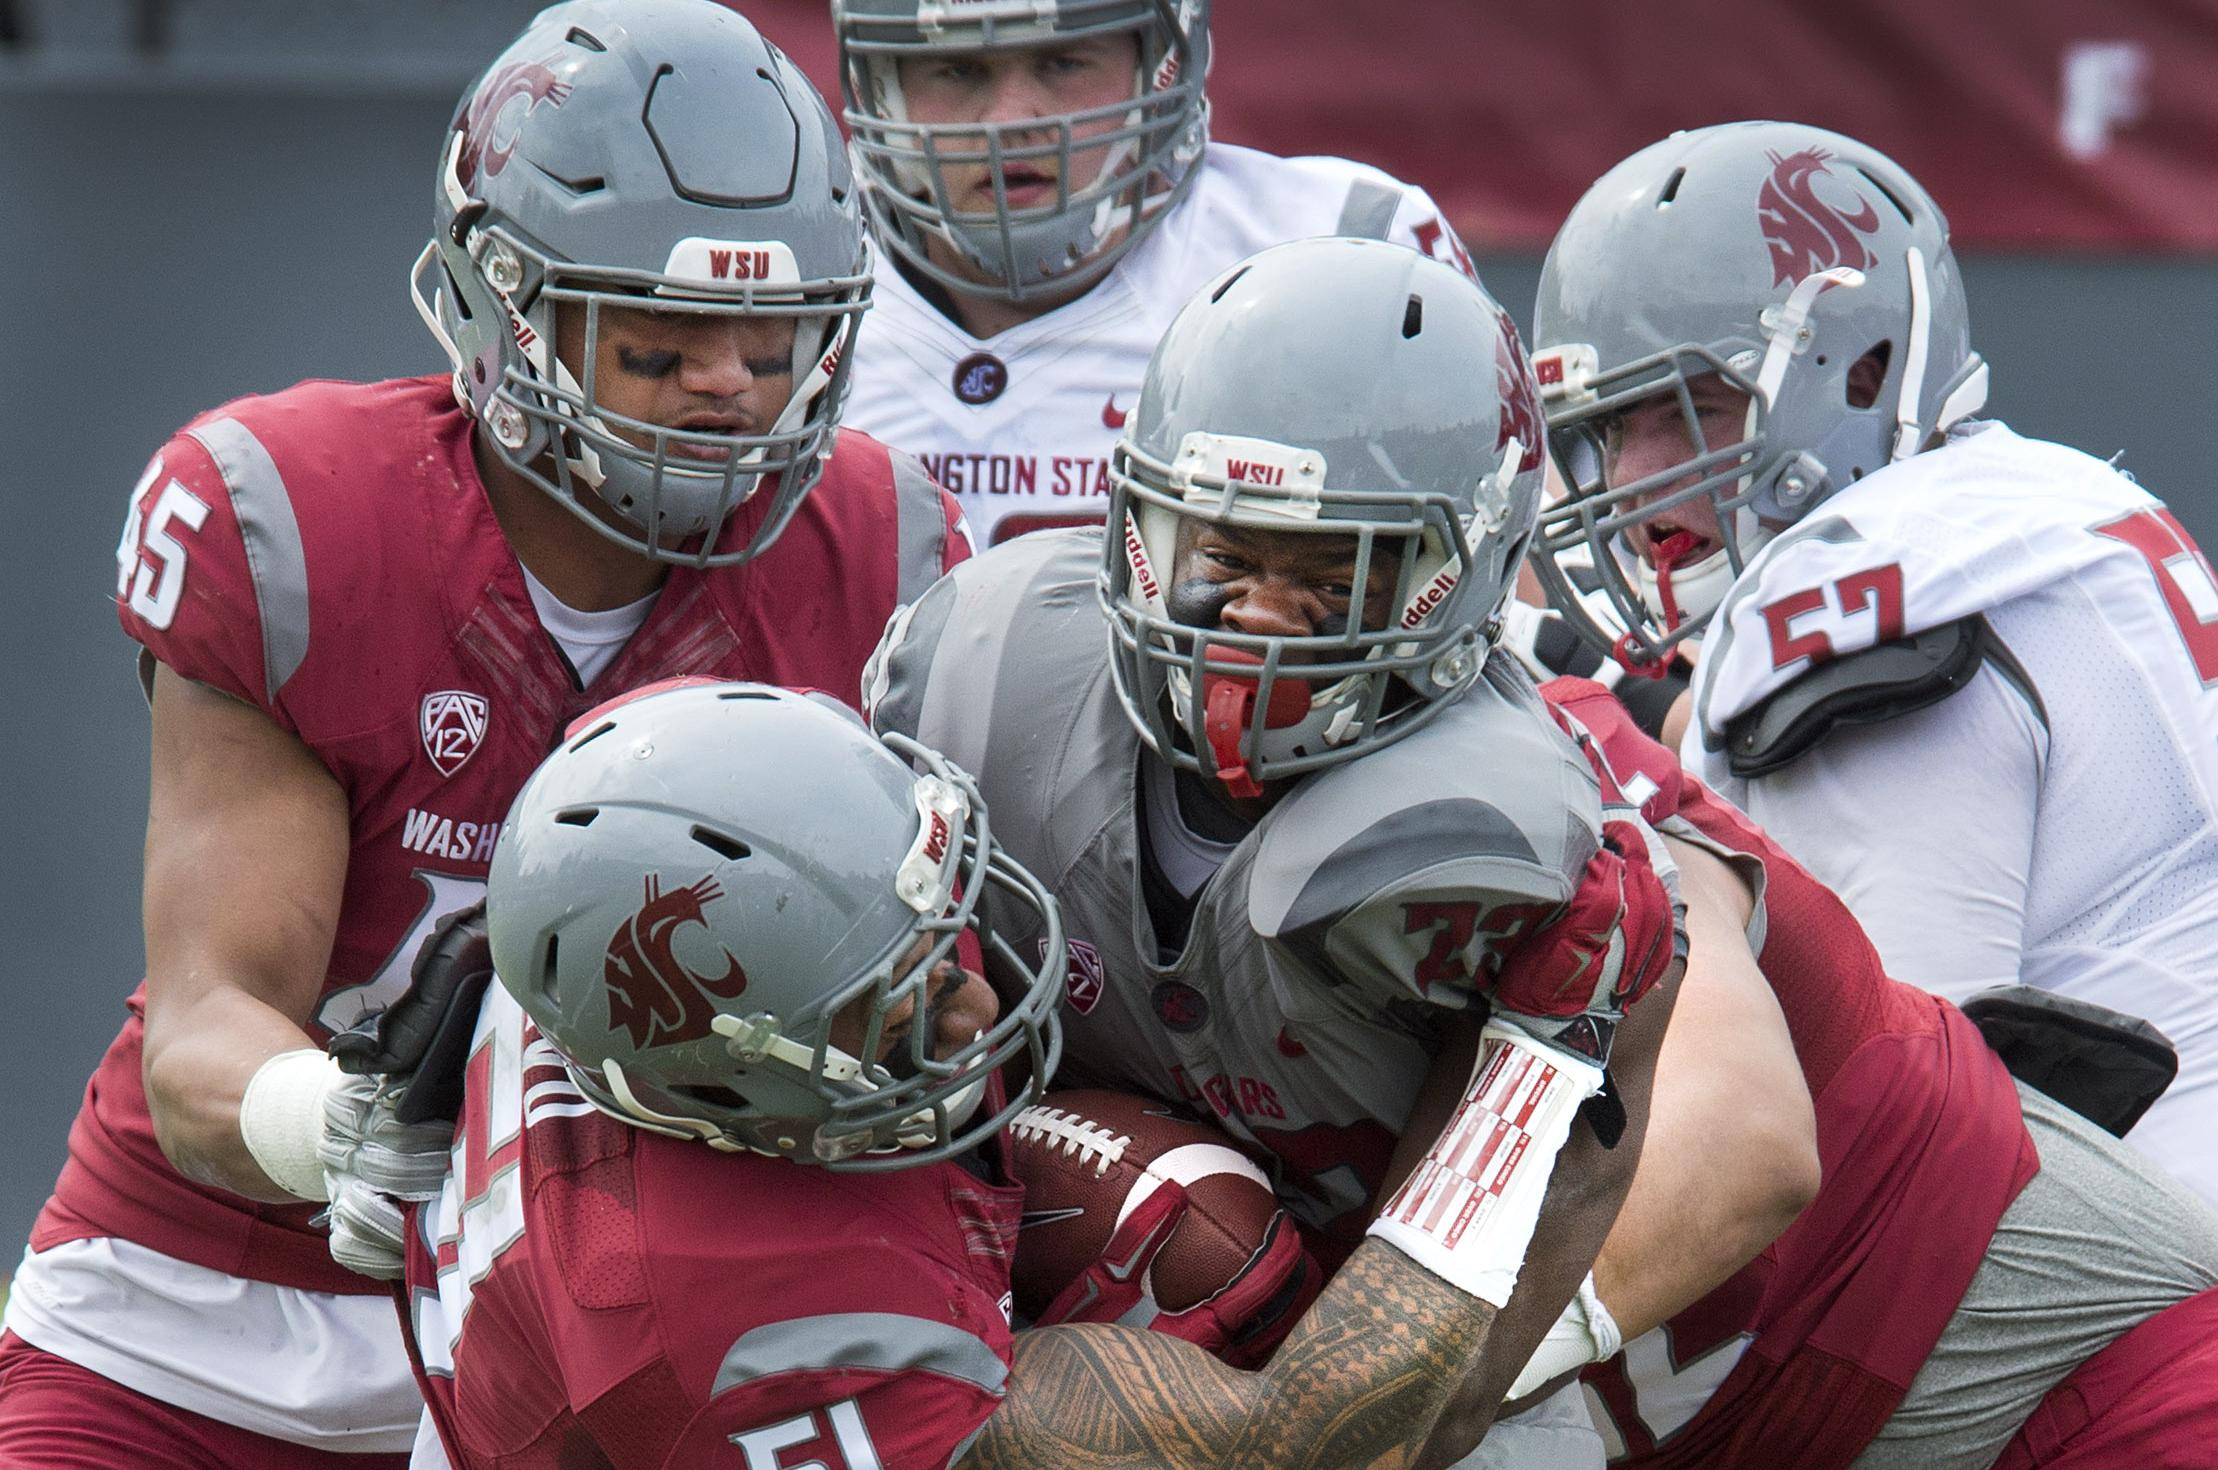 washington state strives for equal sides in annual crimson and